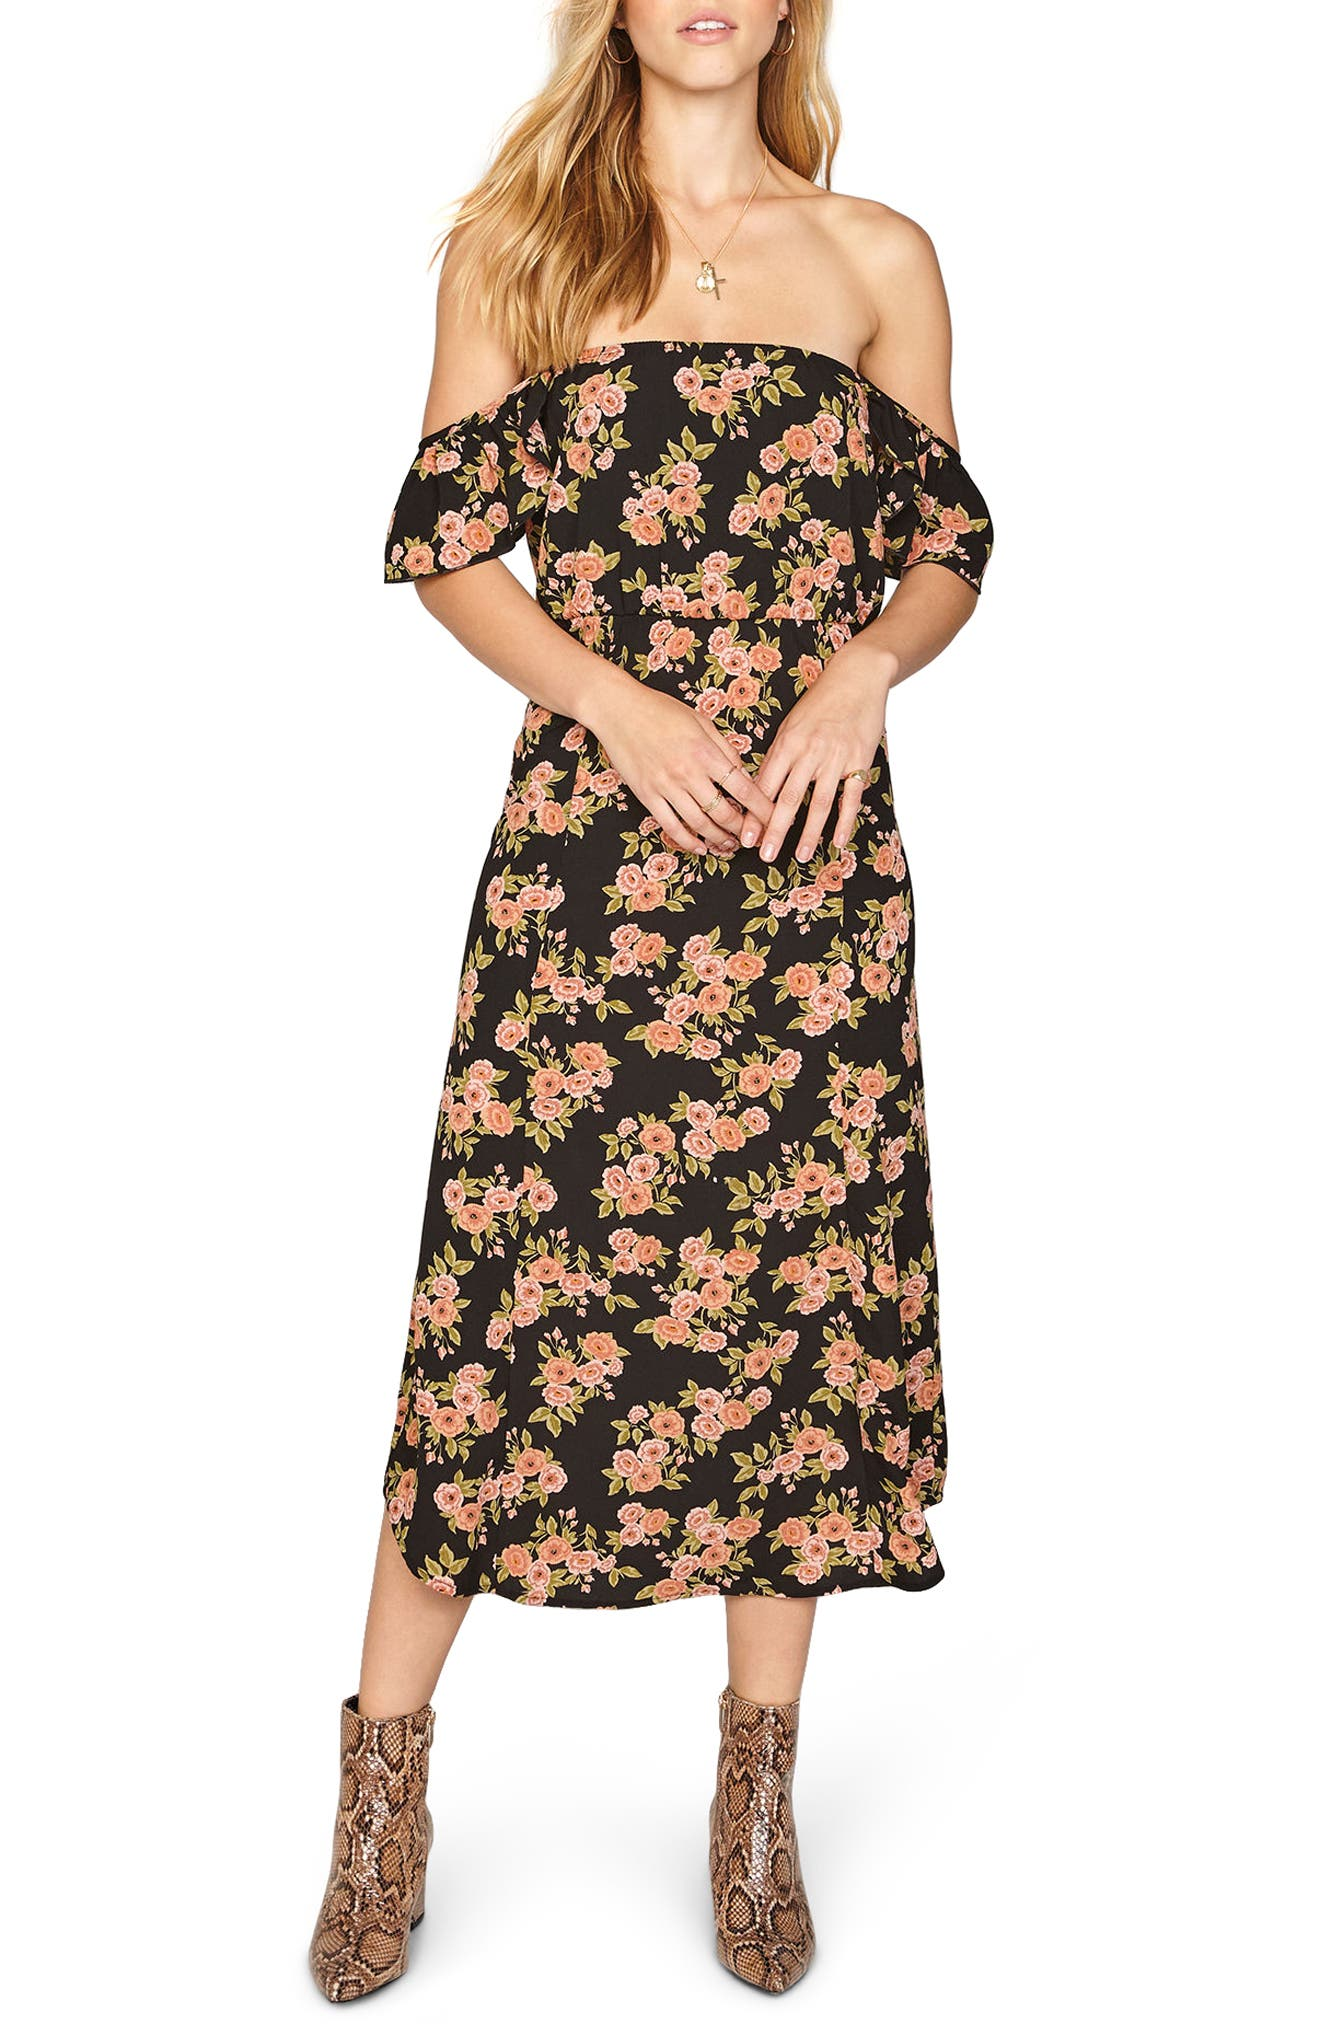 Sweeter Than You Off the Shoulder Midi Dress,                         Main,                         color, 001